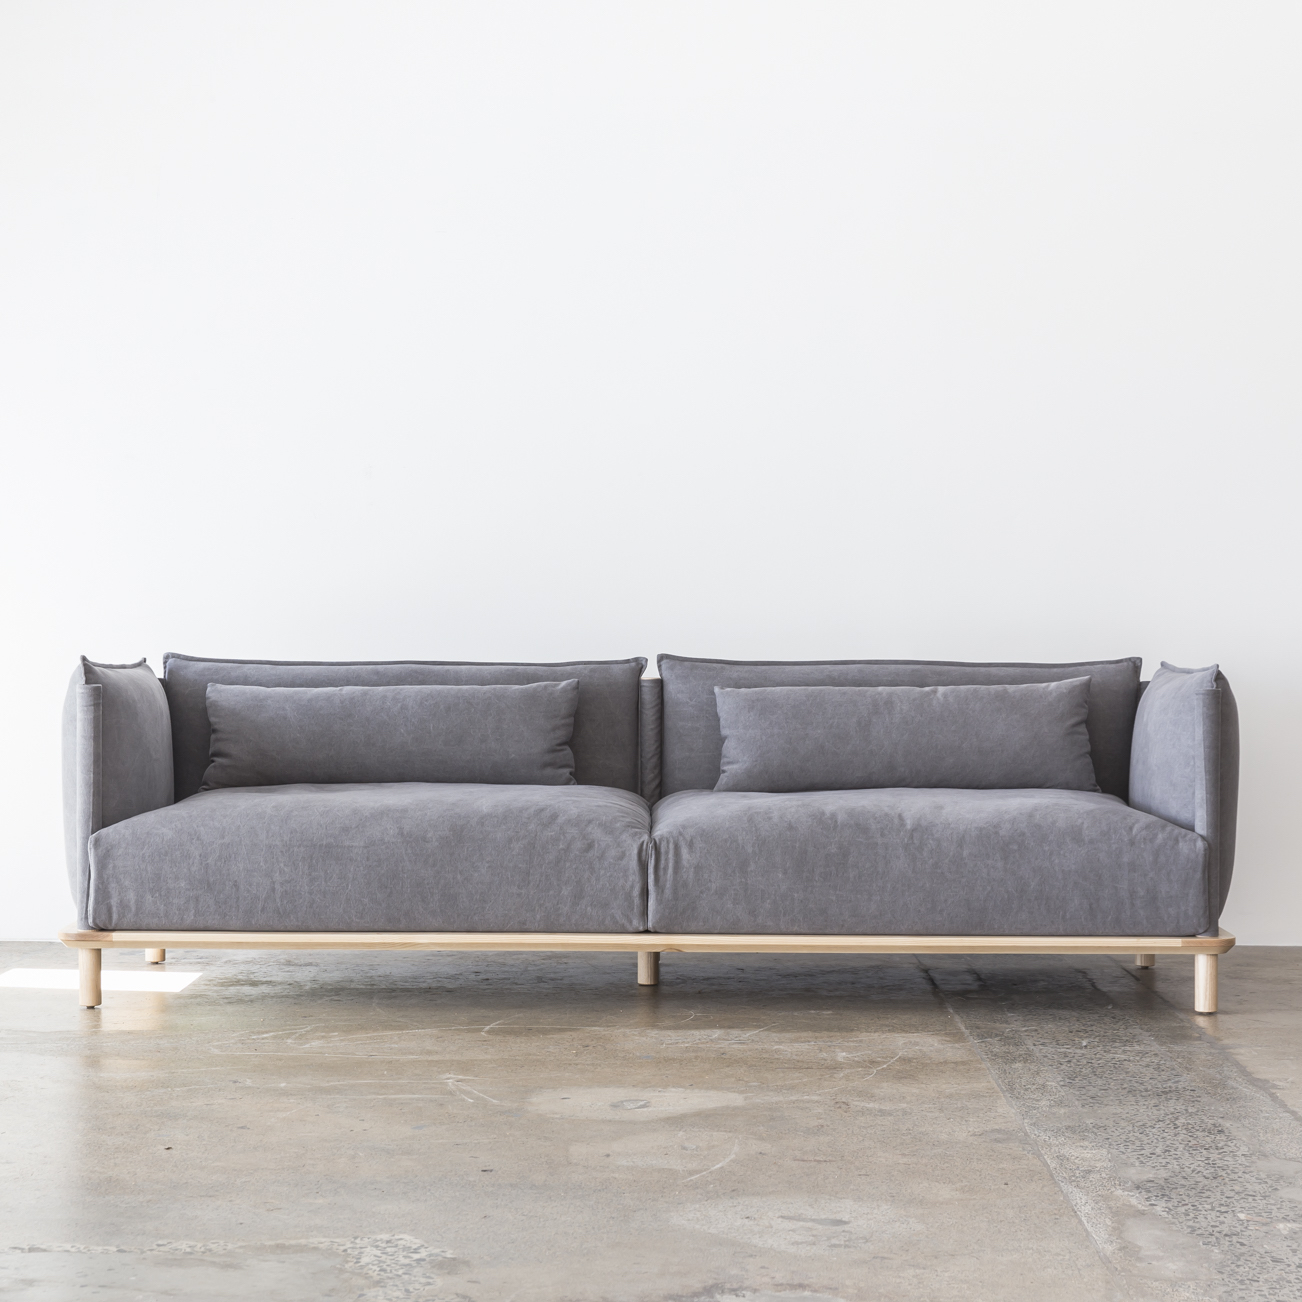 Our Tatami sofa in Charcoal